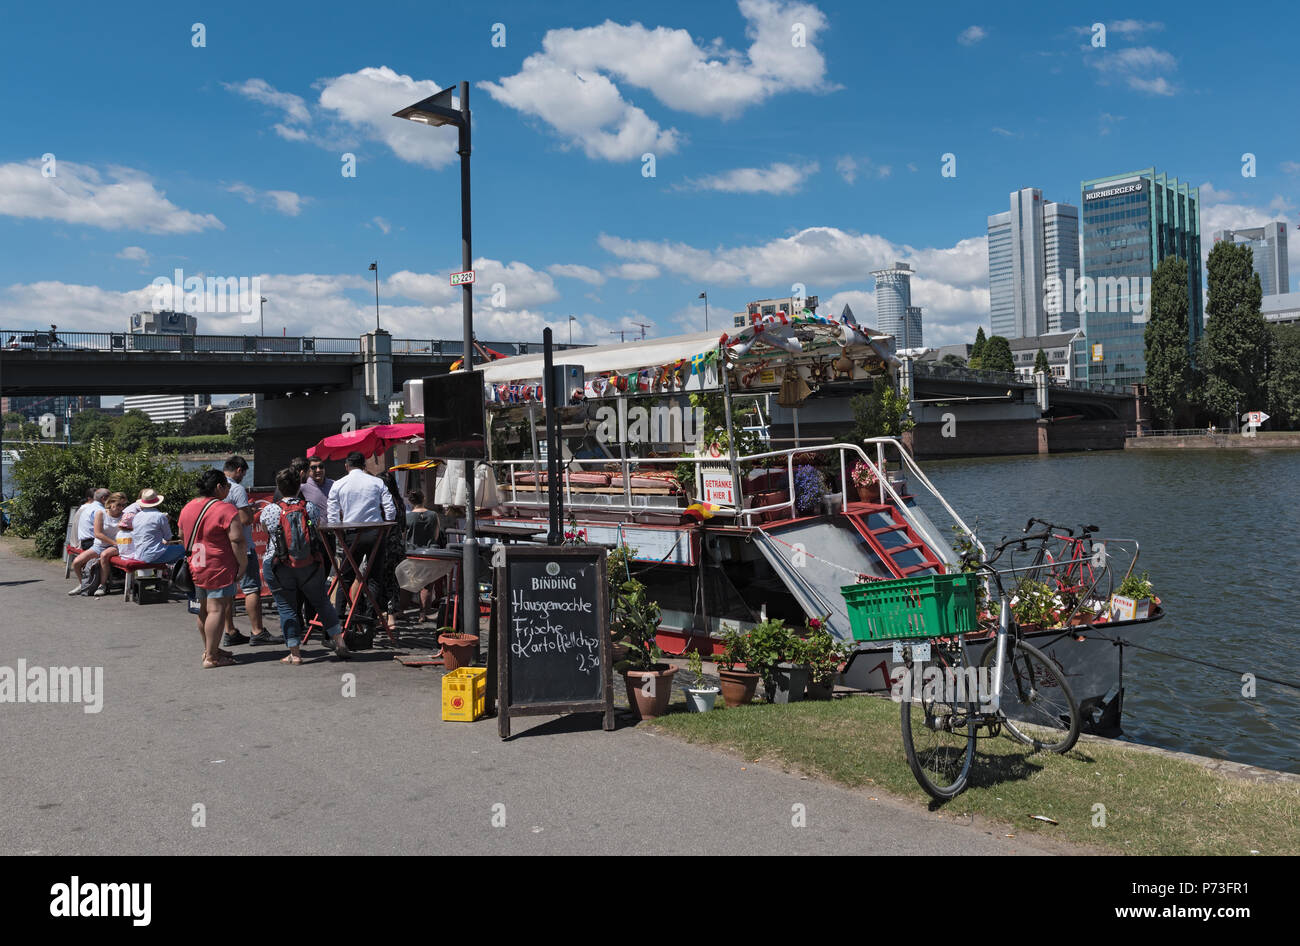 customers in front of the Floating Food stall on the Main River, Frankfurt, Germany - Stock Image